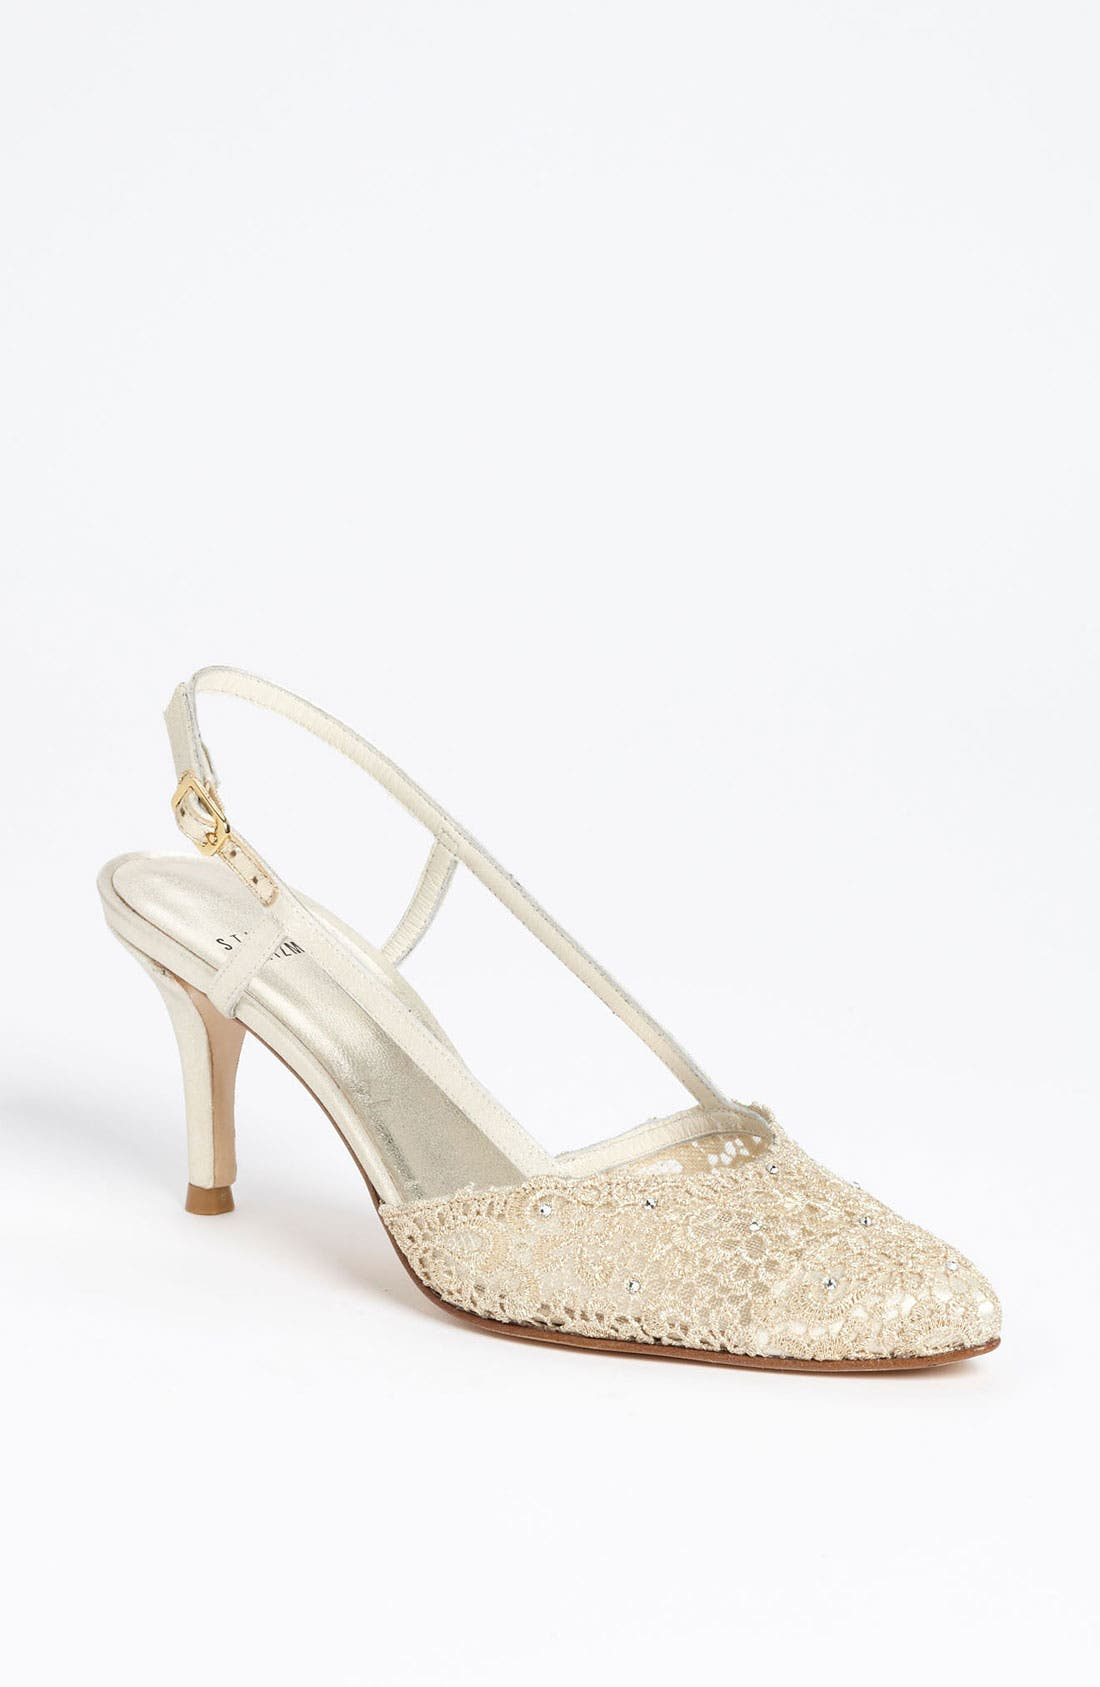 Alternate Image 1 Selected - Stuart Weitzman 'Lady' Pump